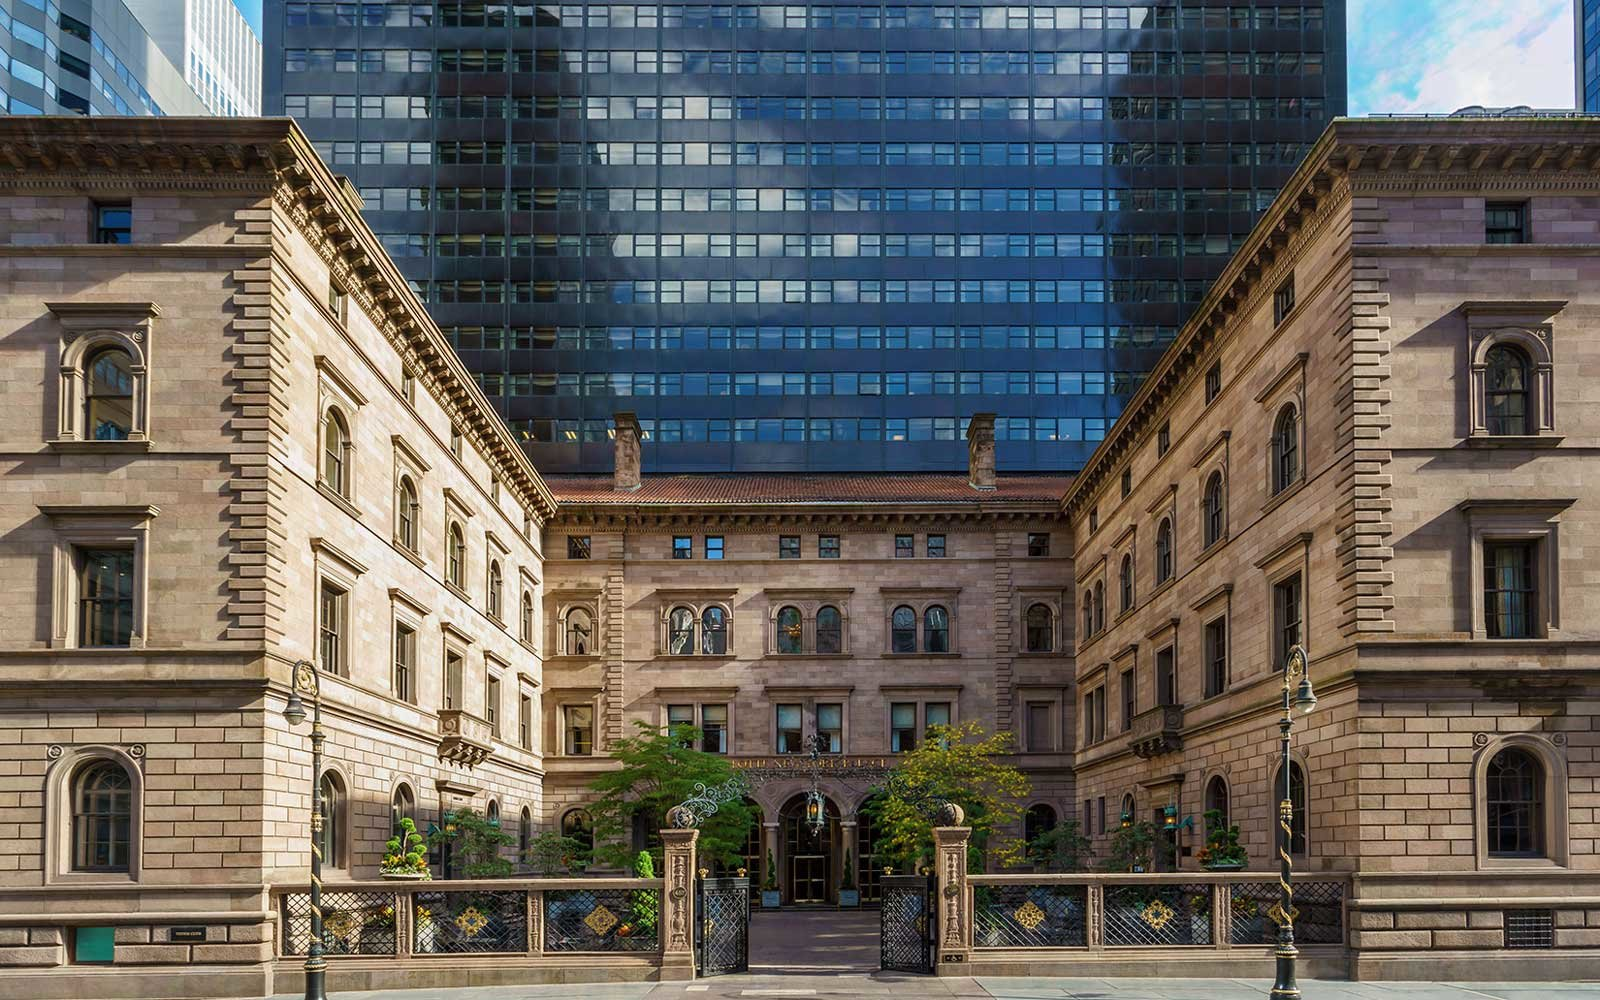 Exterior of the Lotte New York Palace